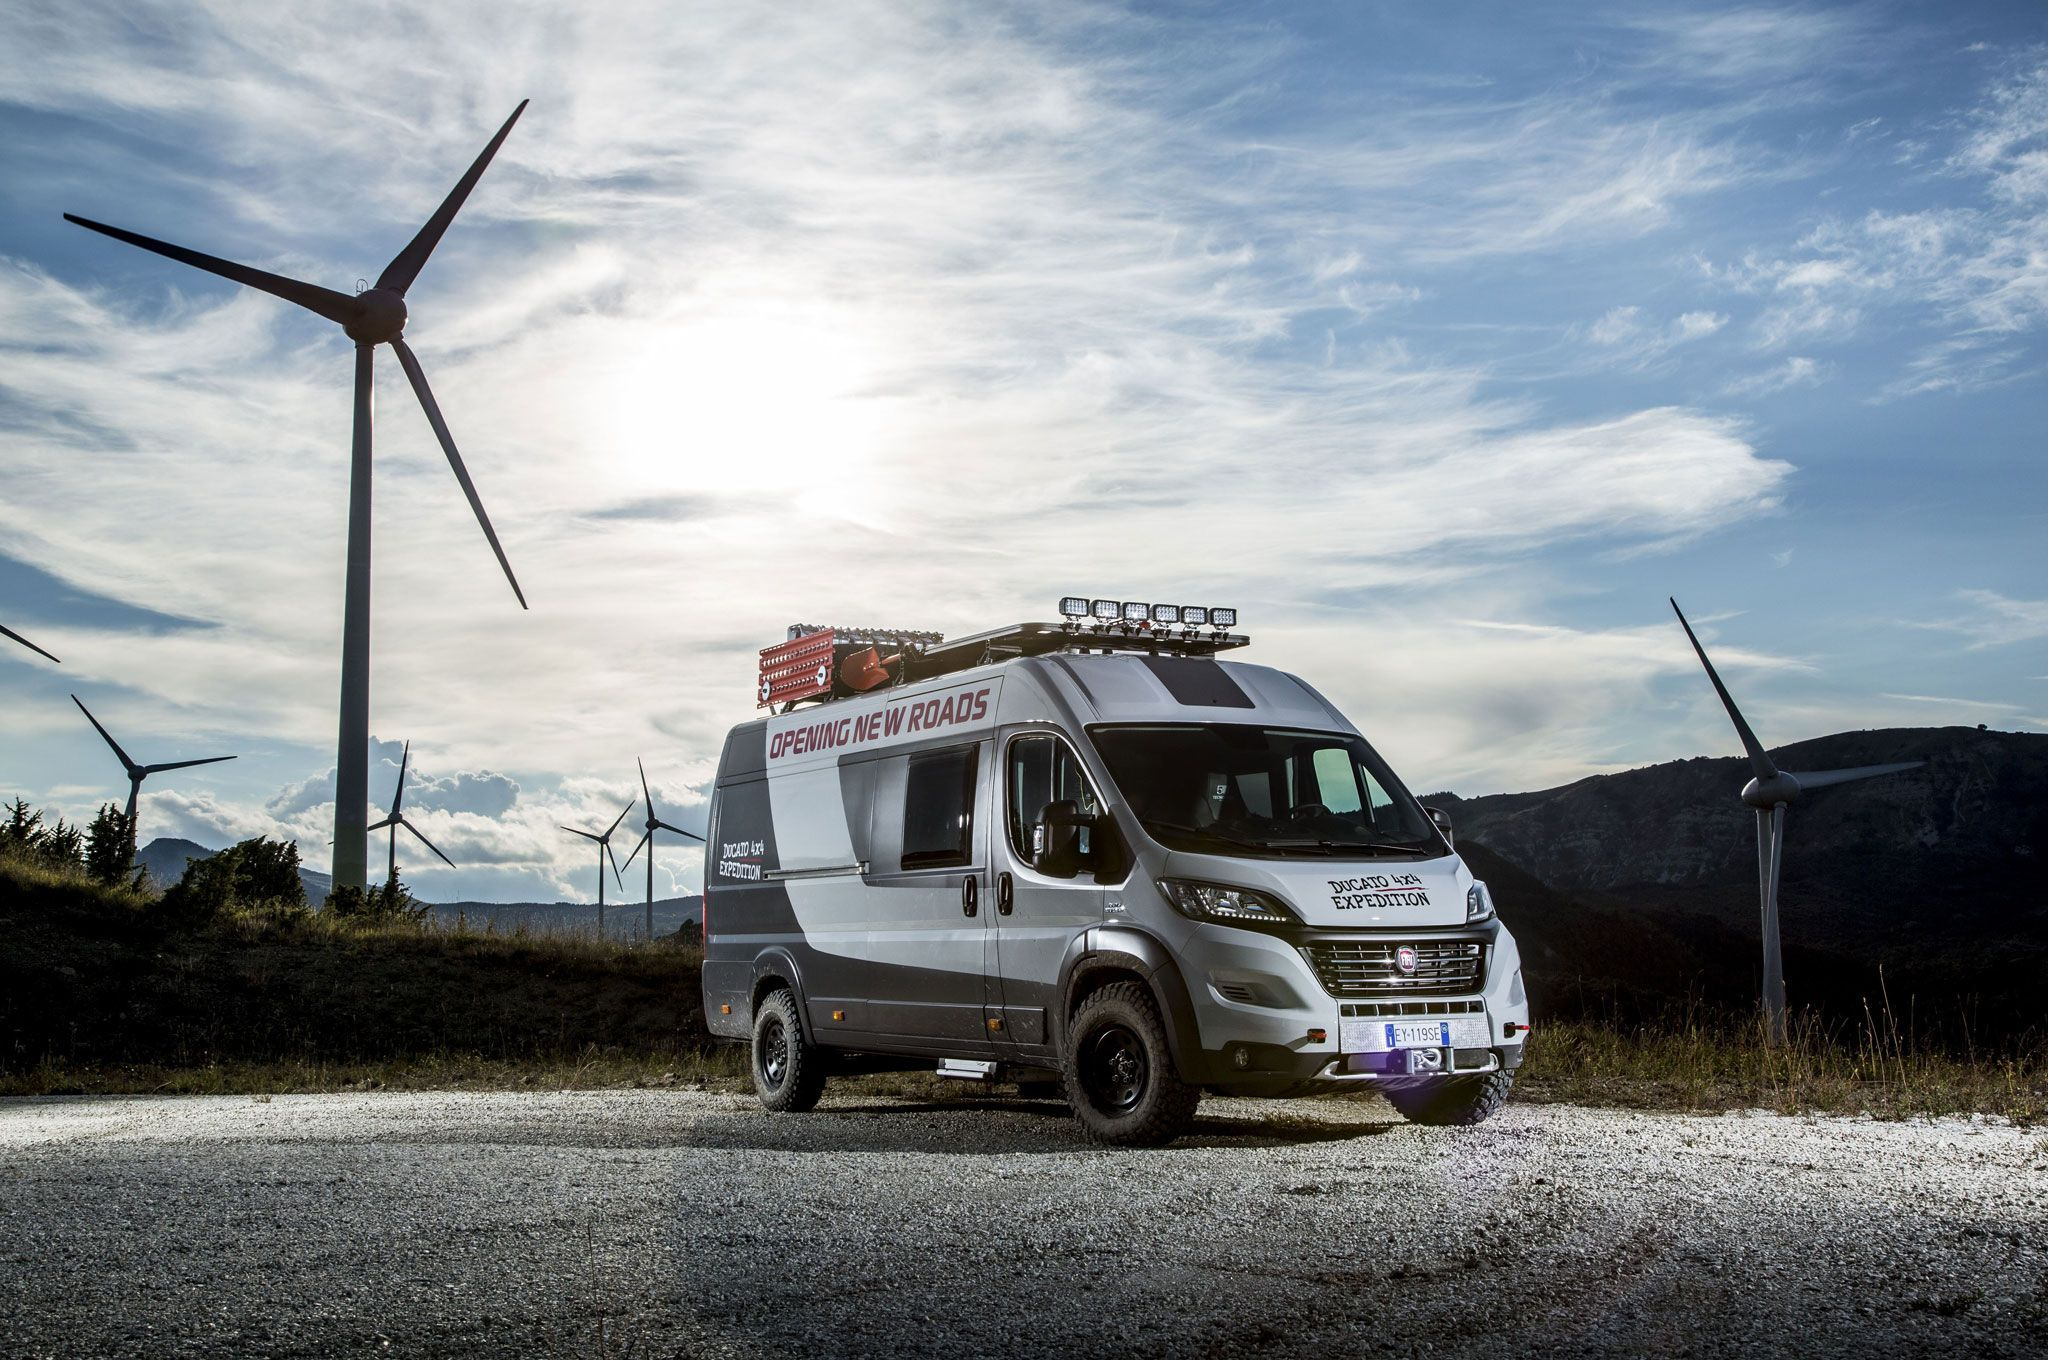 Fiat Ducato 4x4 Expedition Camper Show Van Appears At UK Trade